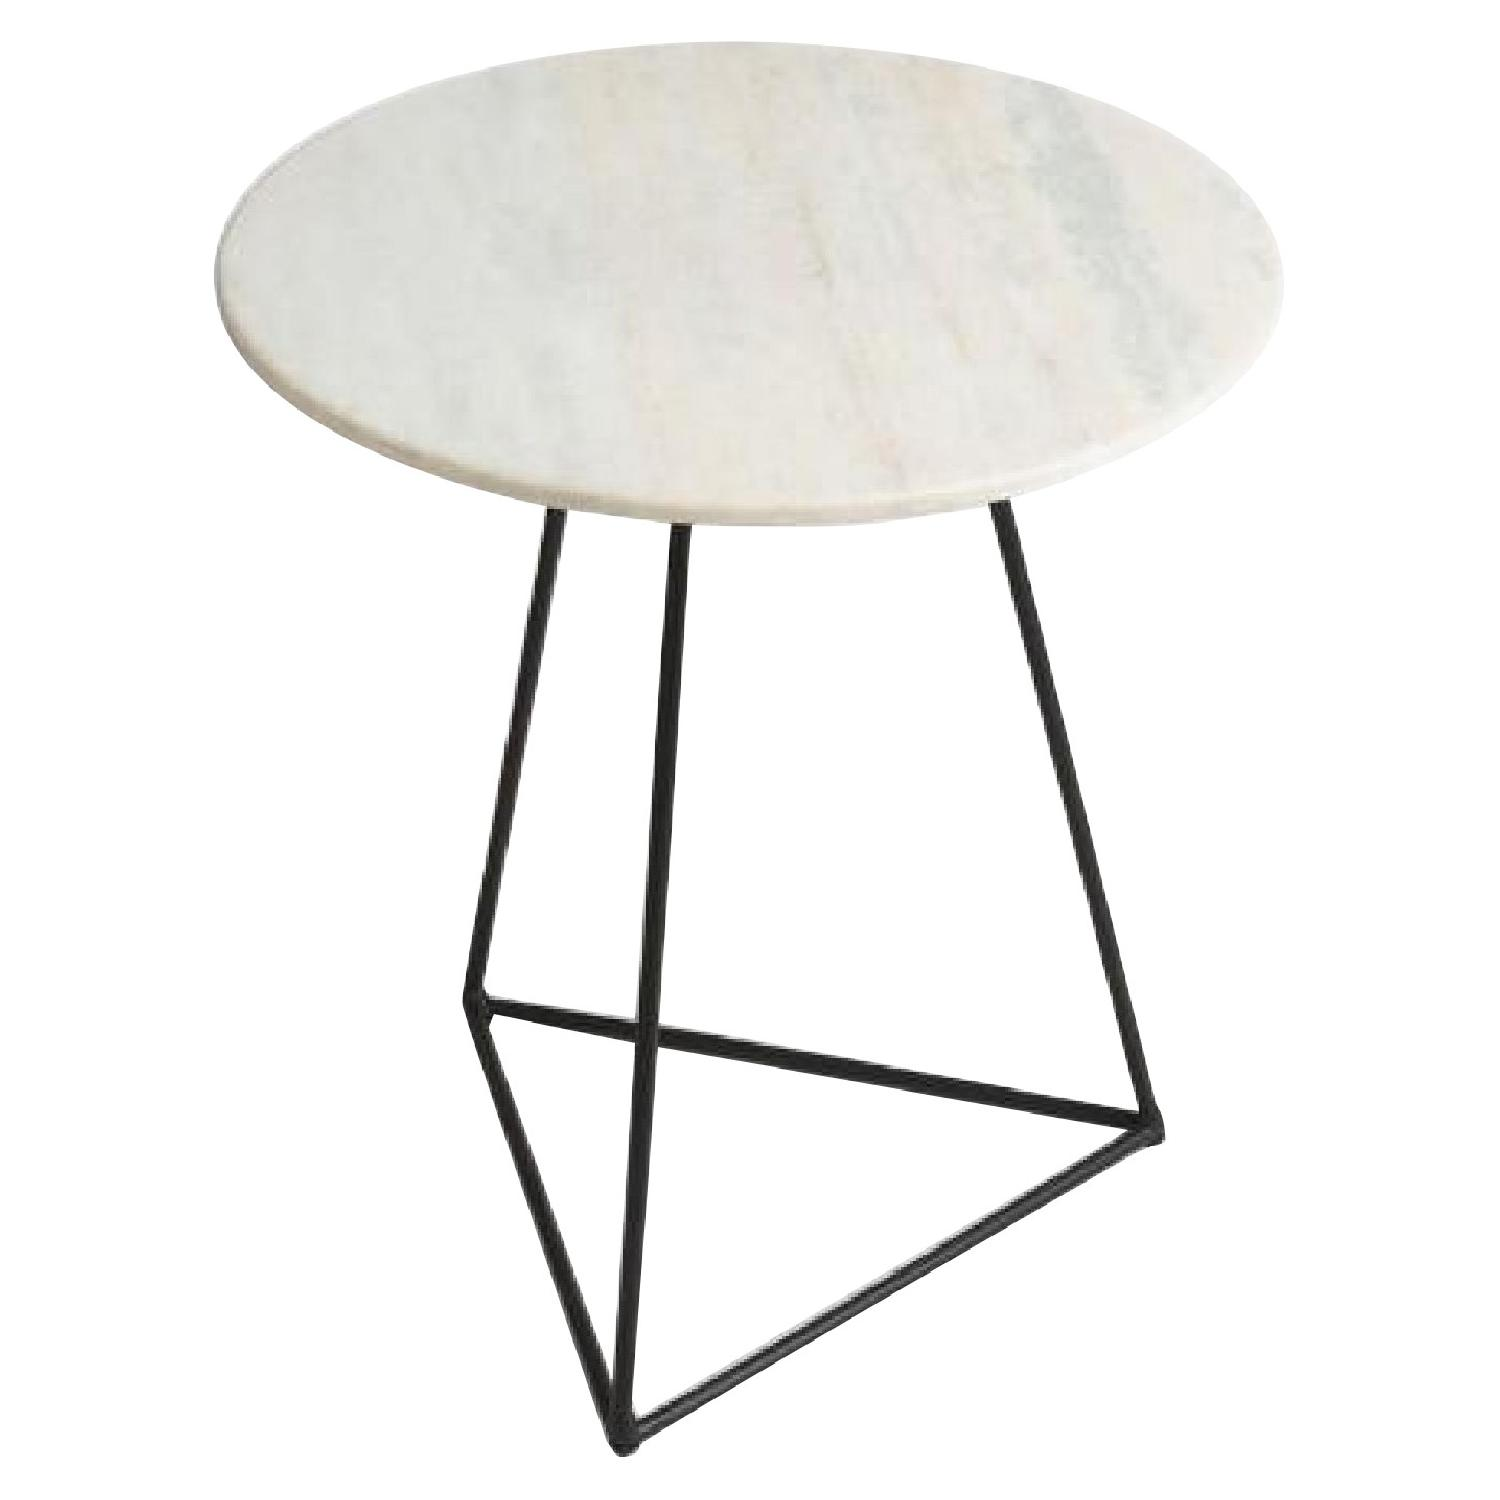 World Market Round White Marble & Metal Side Table